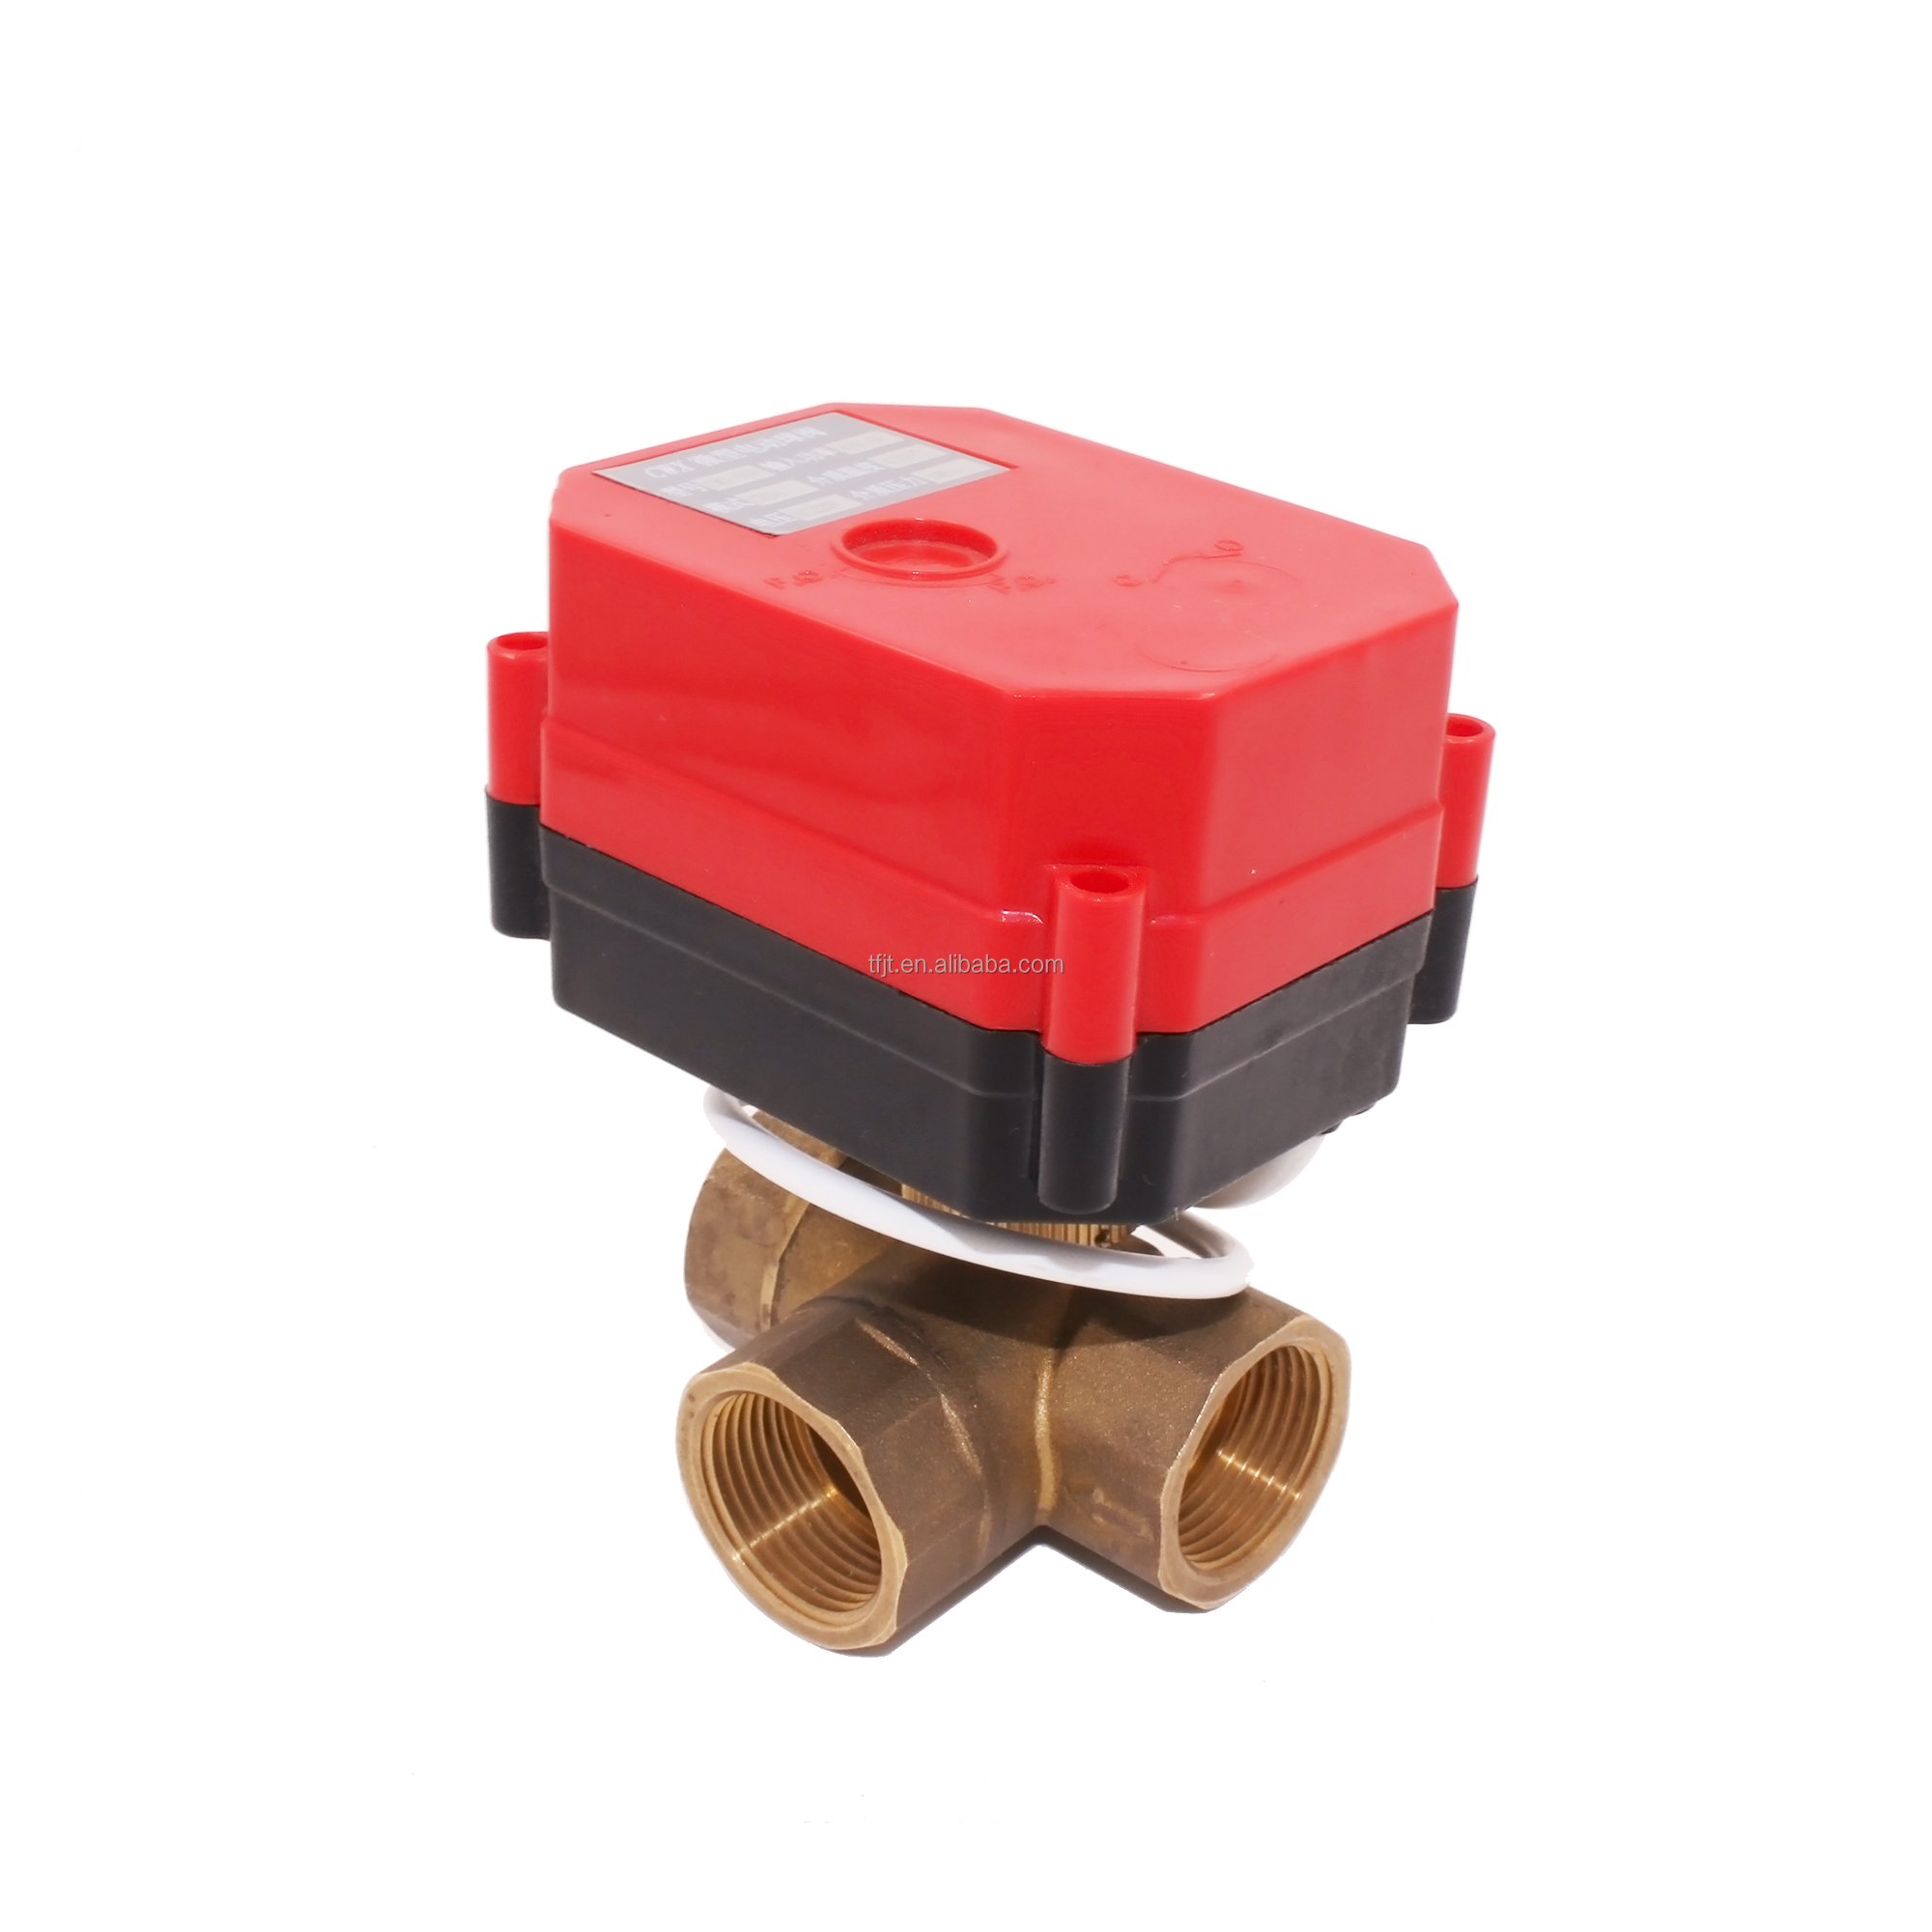 "cwx-60p 6nm electric ball valve DC3-6v ADC9-24v AC85-265v <strong>1</strong>/2 inch to 2"" for auto flow control equipment"